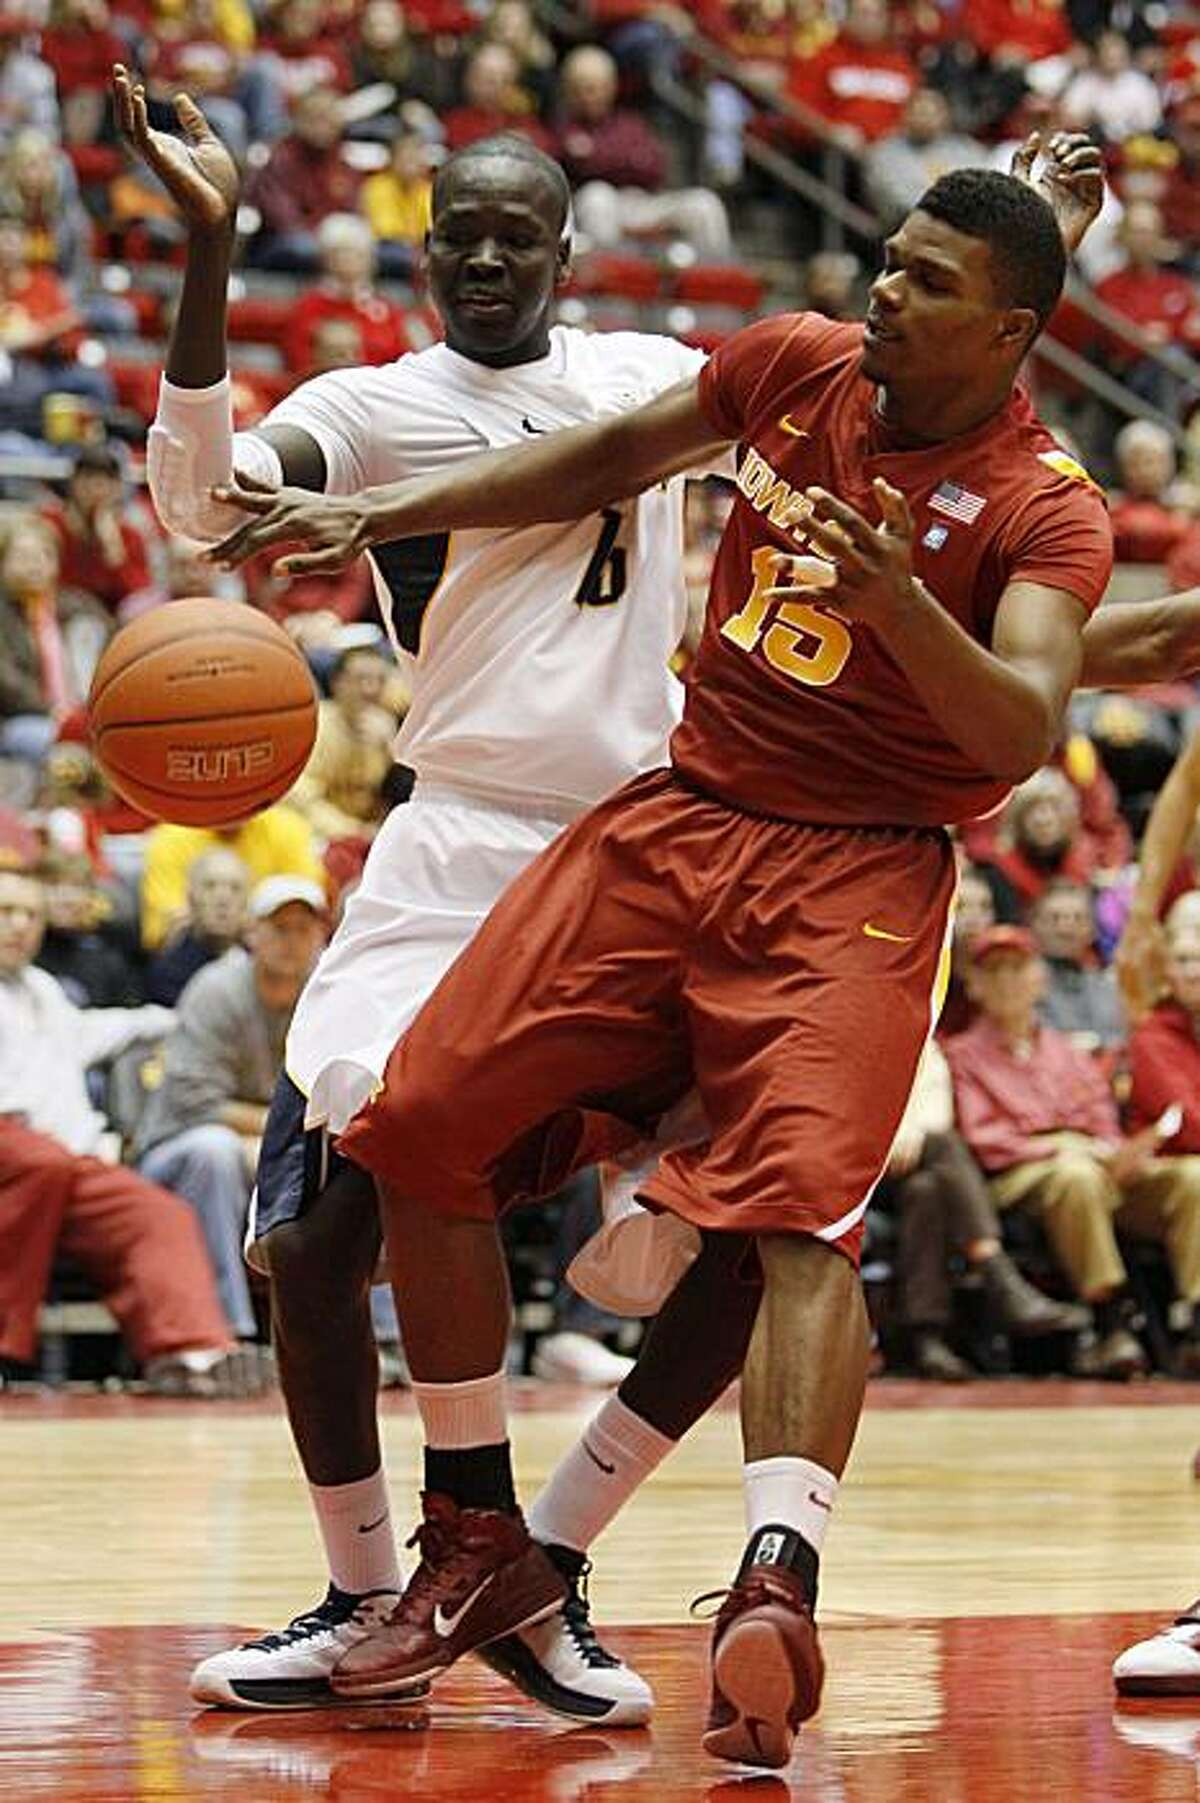 Iowa State forward Calvin Godfrey, right, fights for a rebound with California forward Bak Bak, left, during the first half of an NCAA college basketball game, Saturday, Dec. 4, 2010, in Ames, Iowa. (AP Photo/Charlie Neibergall)